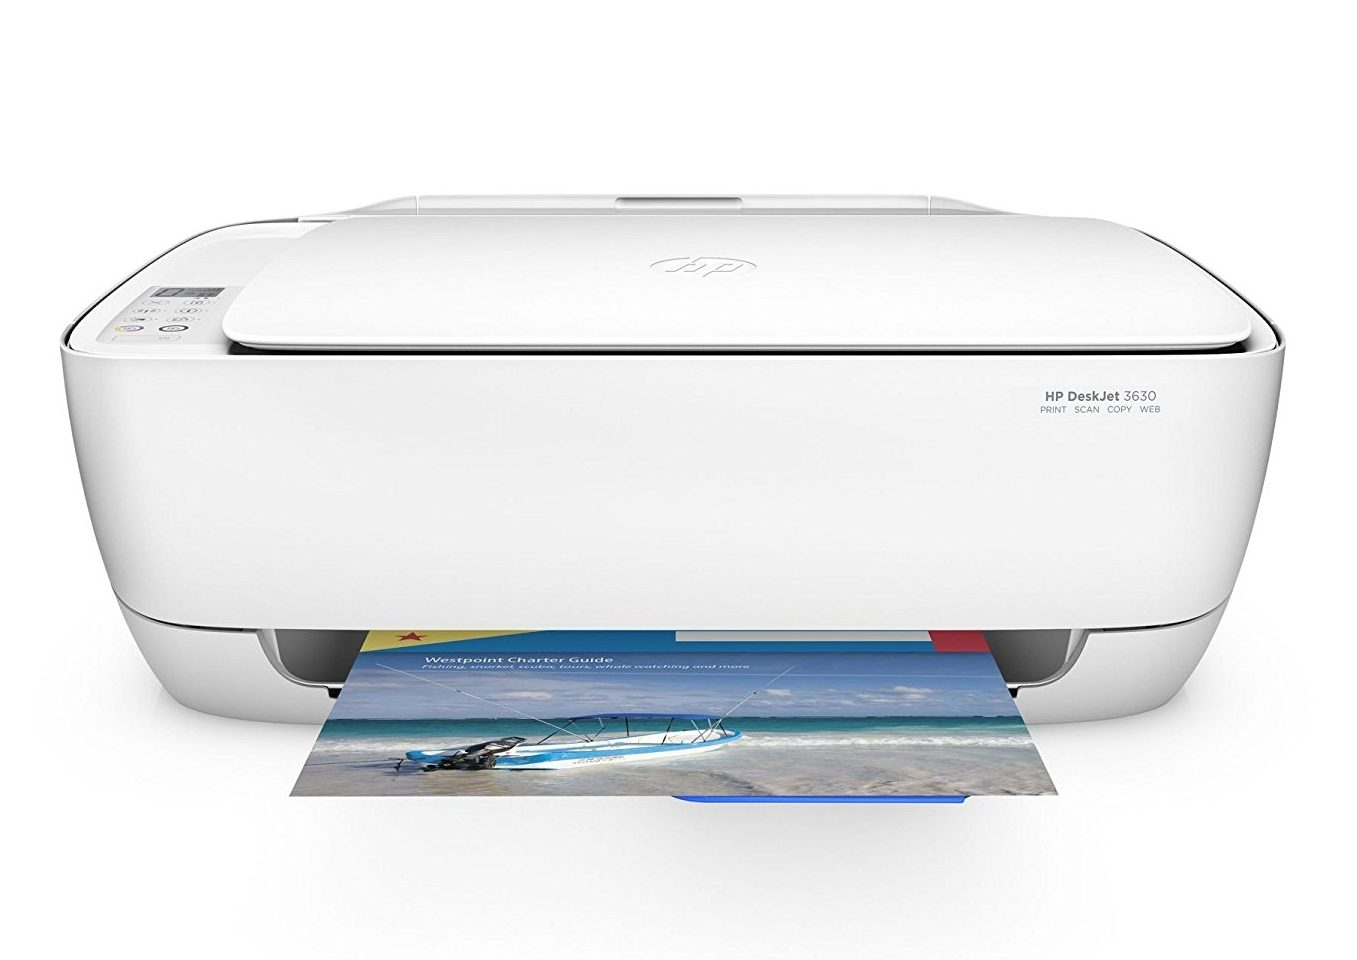 Stampante multifunzione (All in One) - HP DeskJet 3630